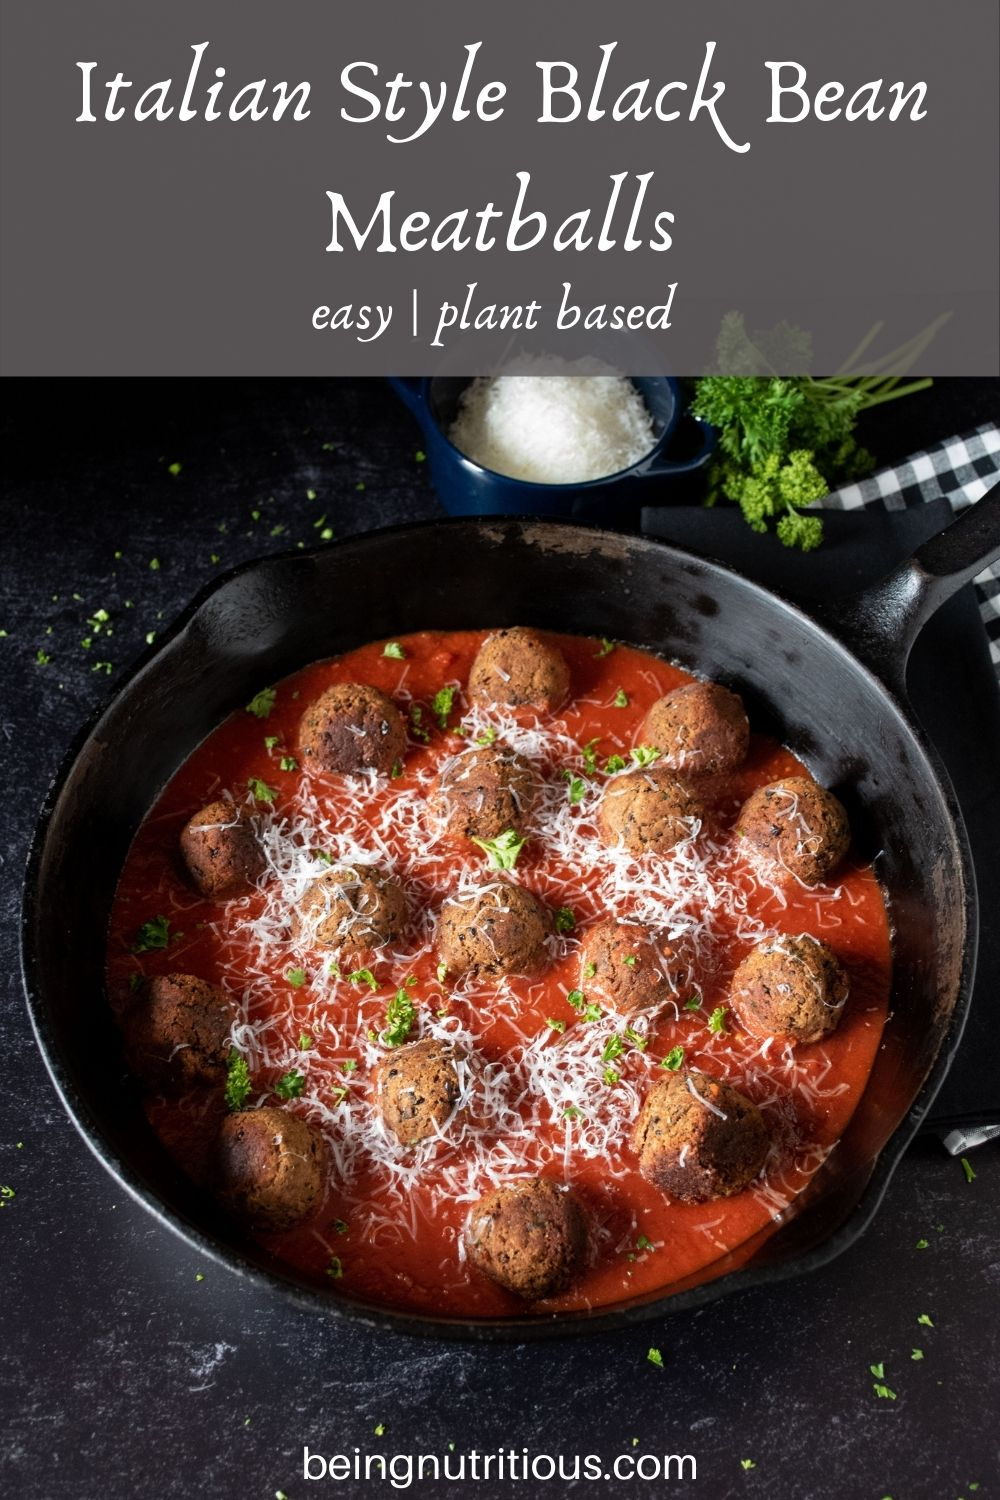 Skillet with meatballs made of black beans with marinara sauce. Text overlay: Italian Style Black Bean Meatballs; easy, plant based.